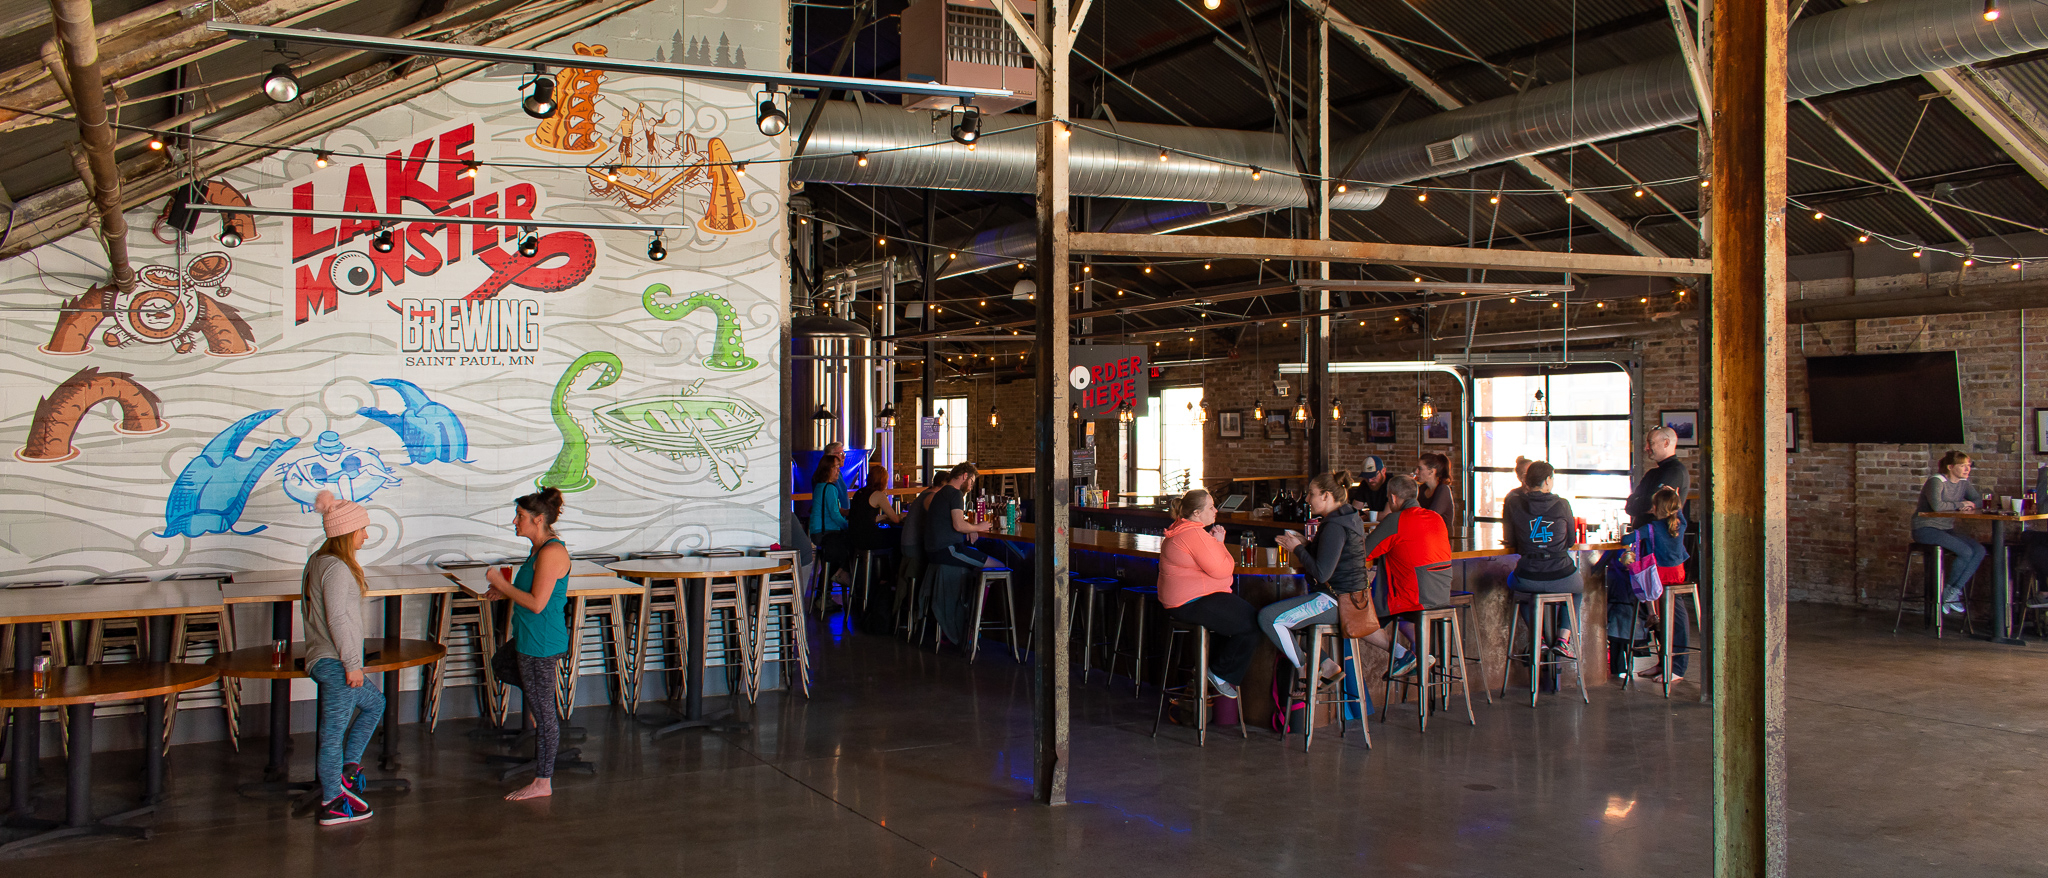 uprooted-traveler-yoga-and-pint-vegan-lakeside-brewing-what-to-do-minneapolis-st-paul-4.jpg